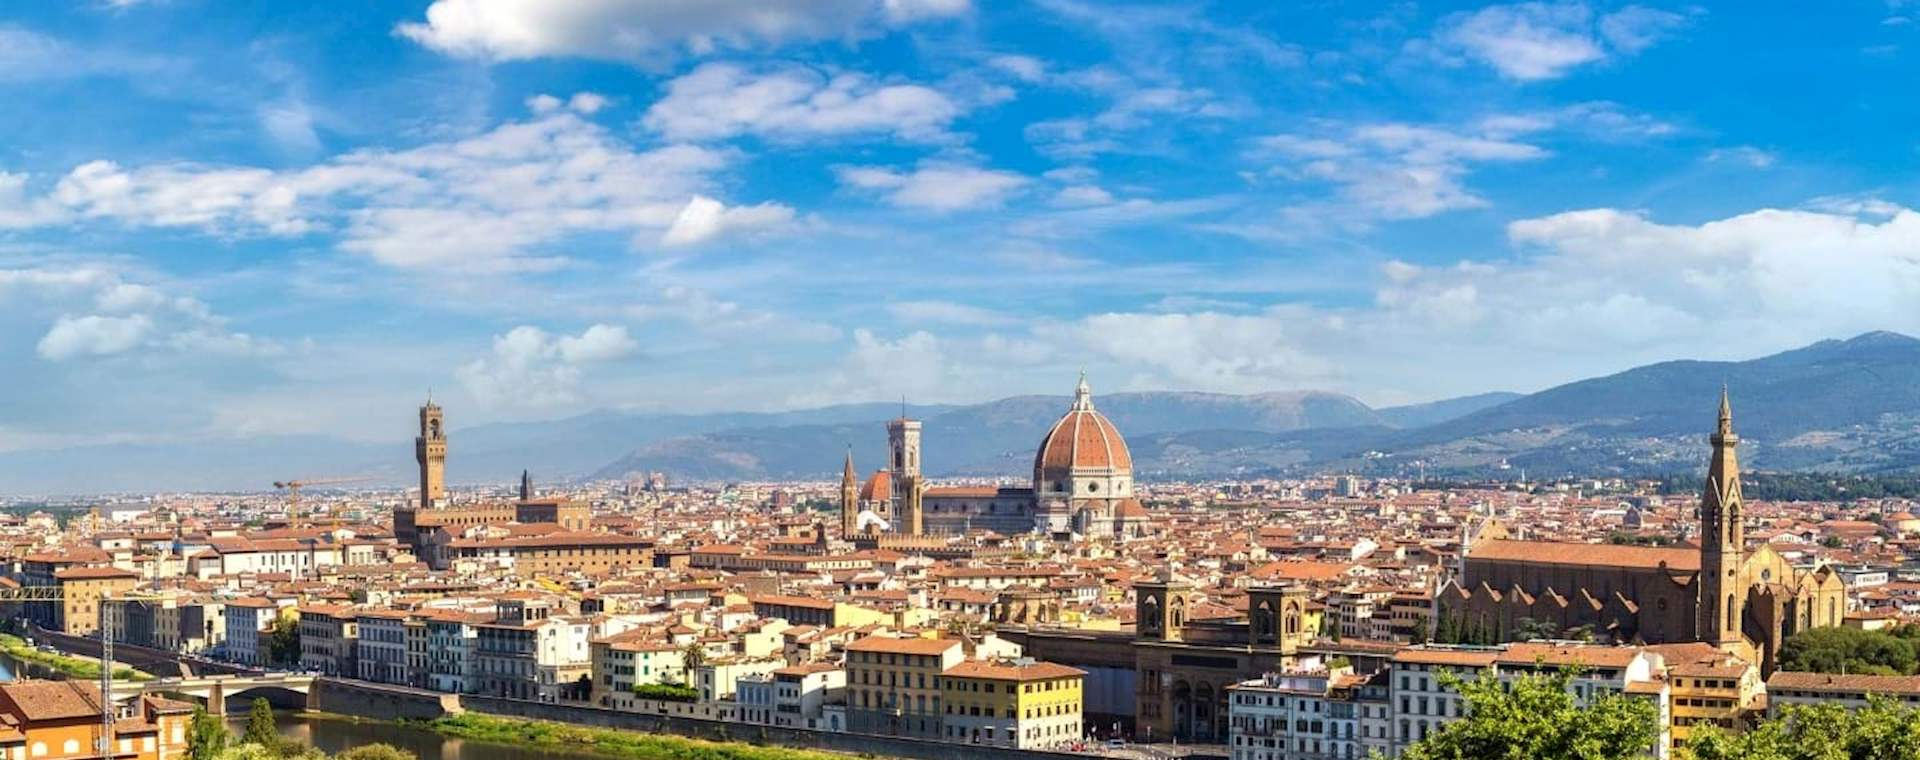 Day Trip: Best of Florence with Michelangelo's David from Rome